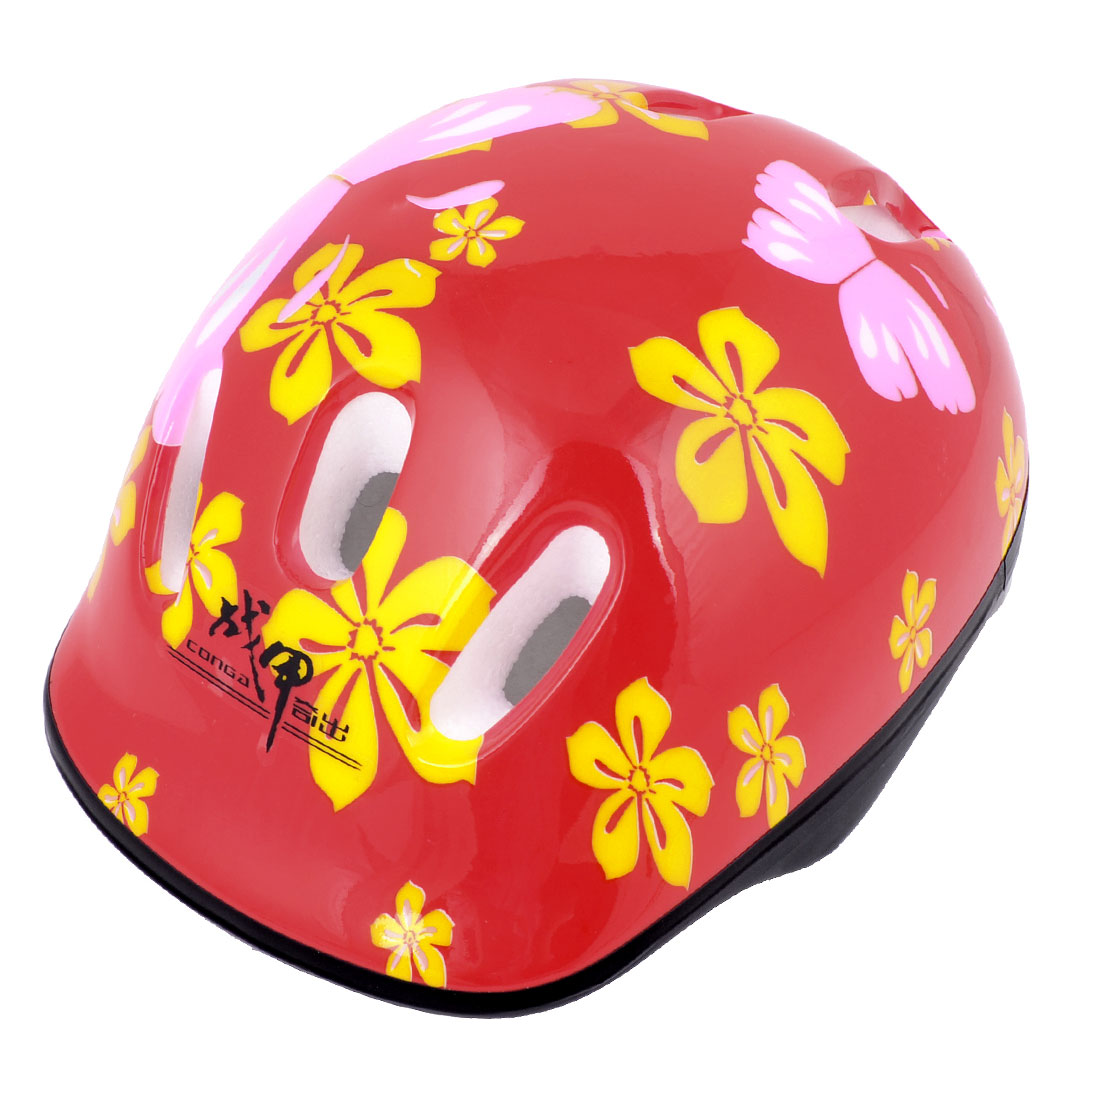 Kids Bicycling Skating Flower Print Foam Lining Safety Helmet Red